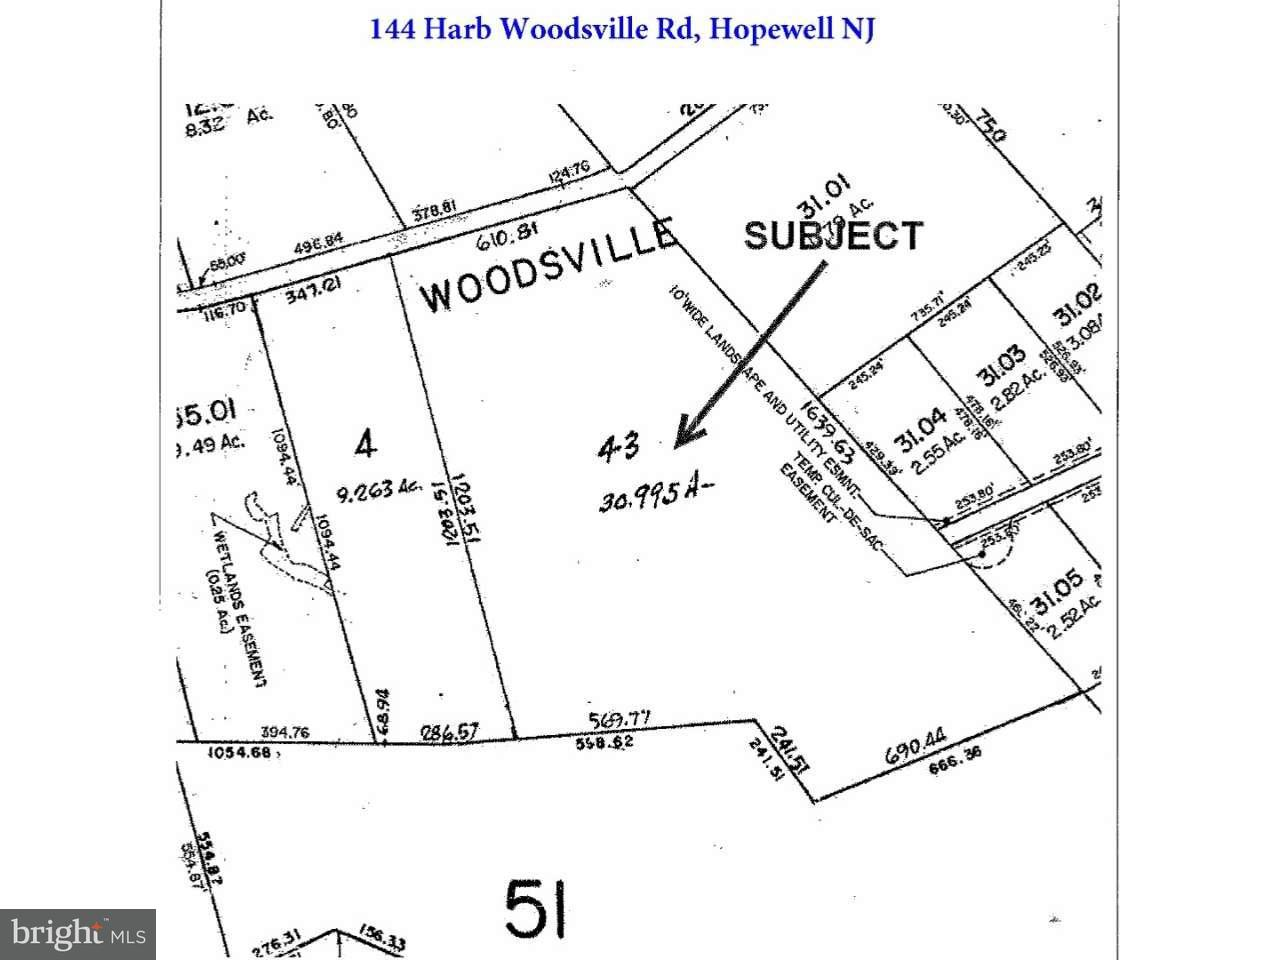 Single Family Home for Sale at 144 HARBOURTOWN WOODSVILLE Road Hopewell, New Jersey 08534 United StatesMunicipality: Hopewell Township